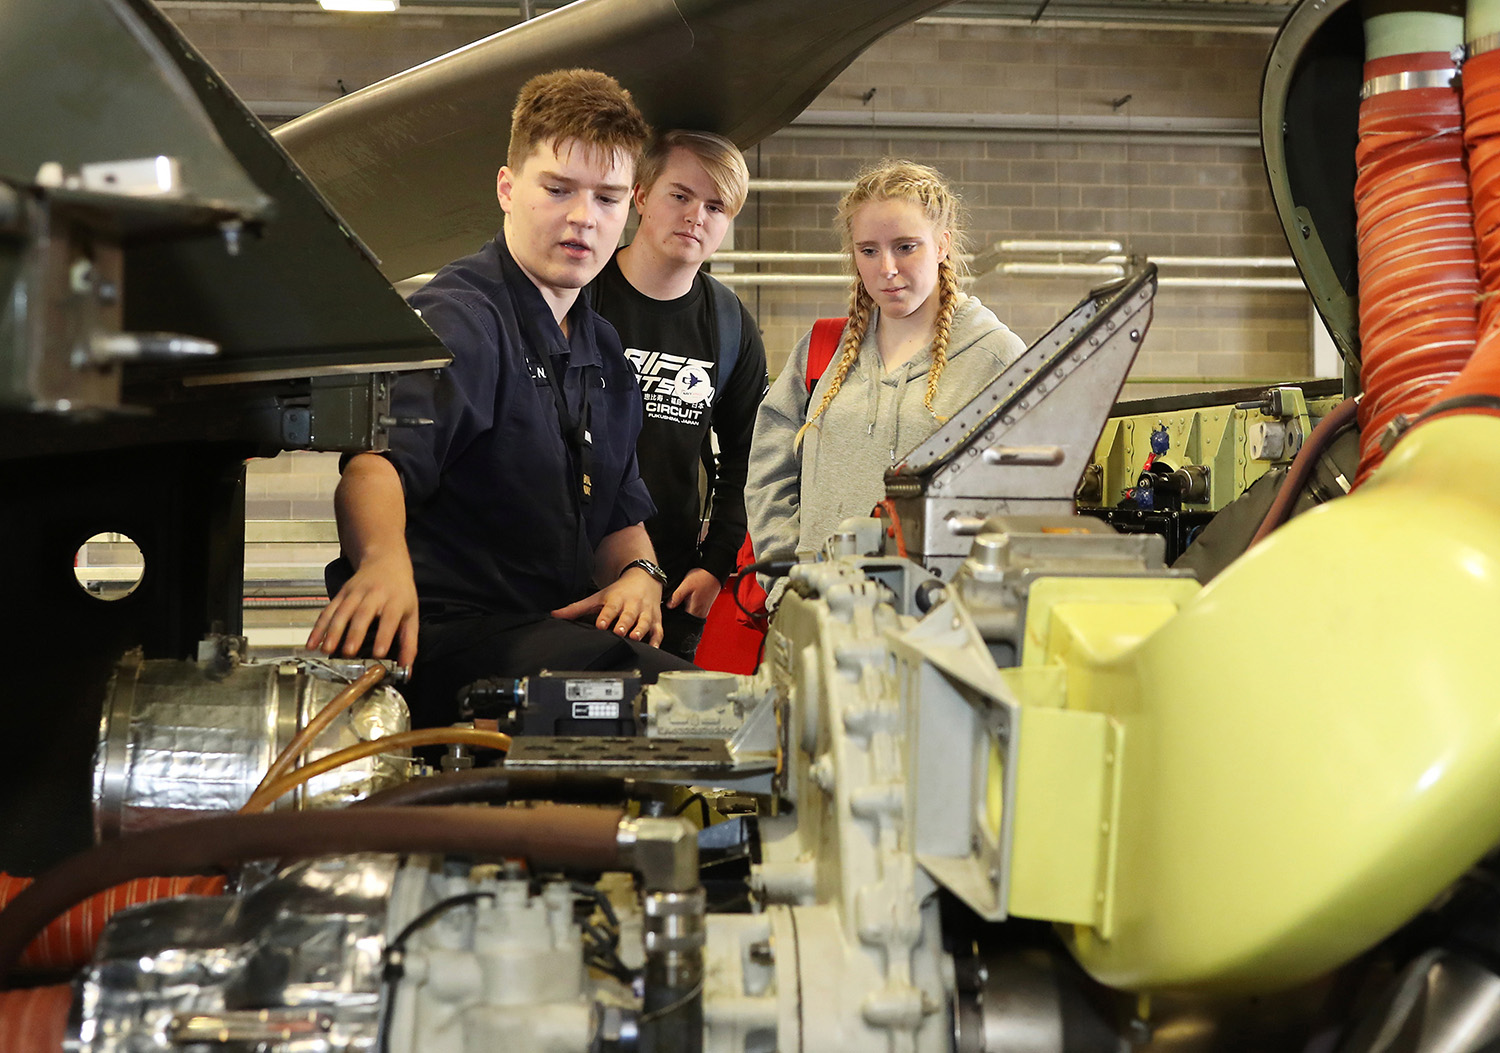 omerset engineering students attend STEM event at Yeovilton